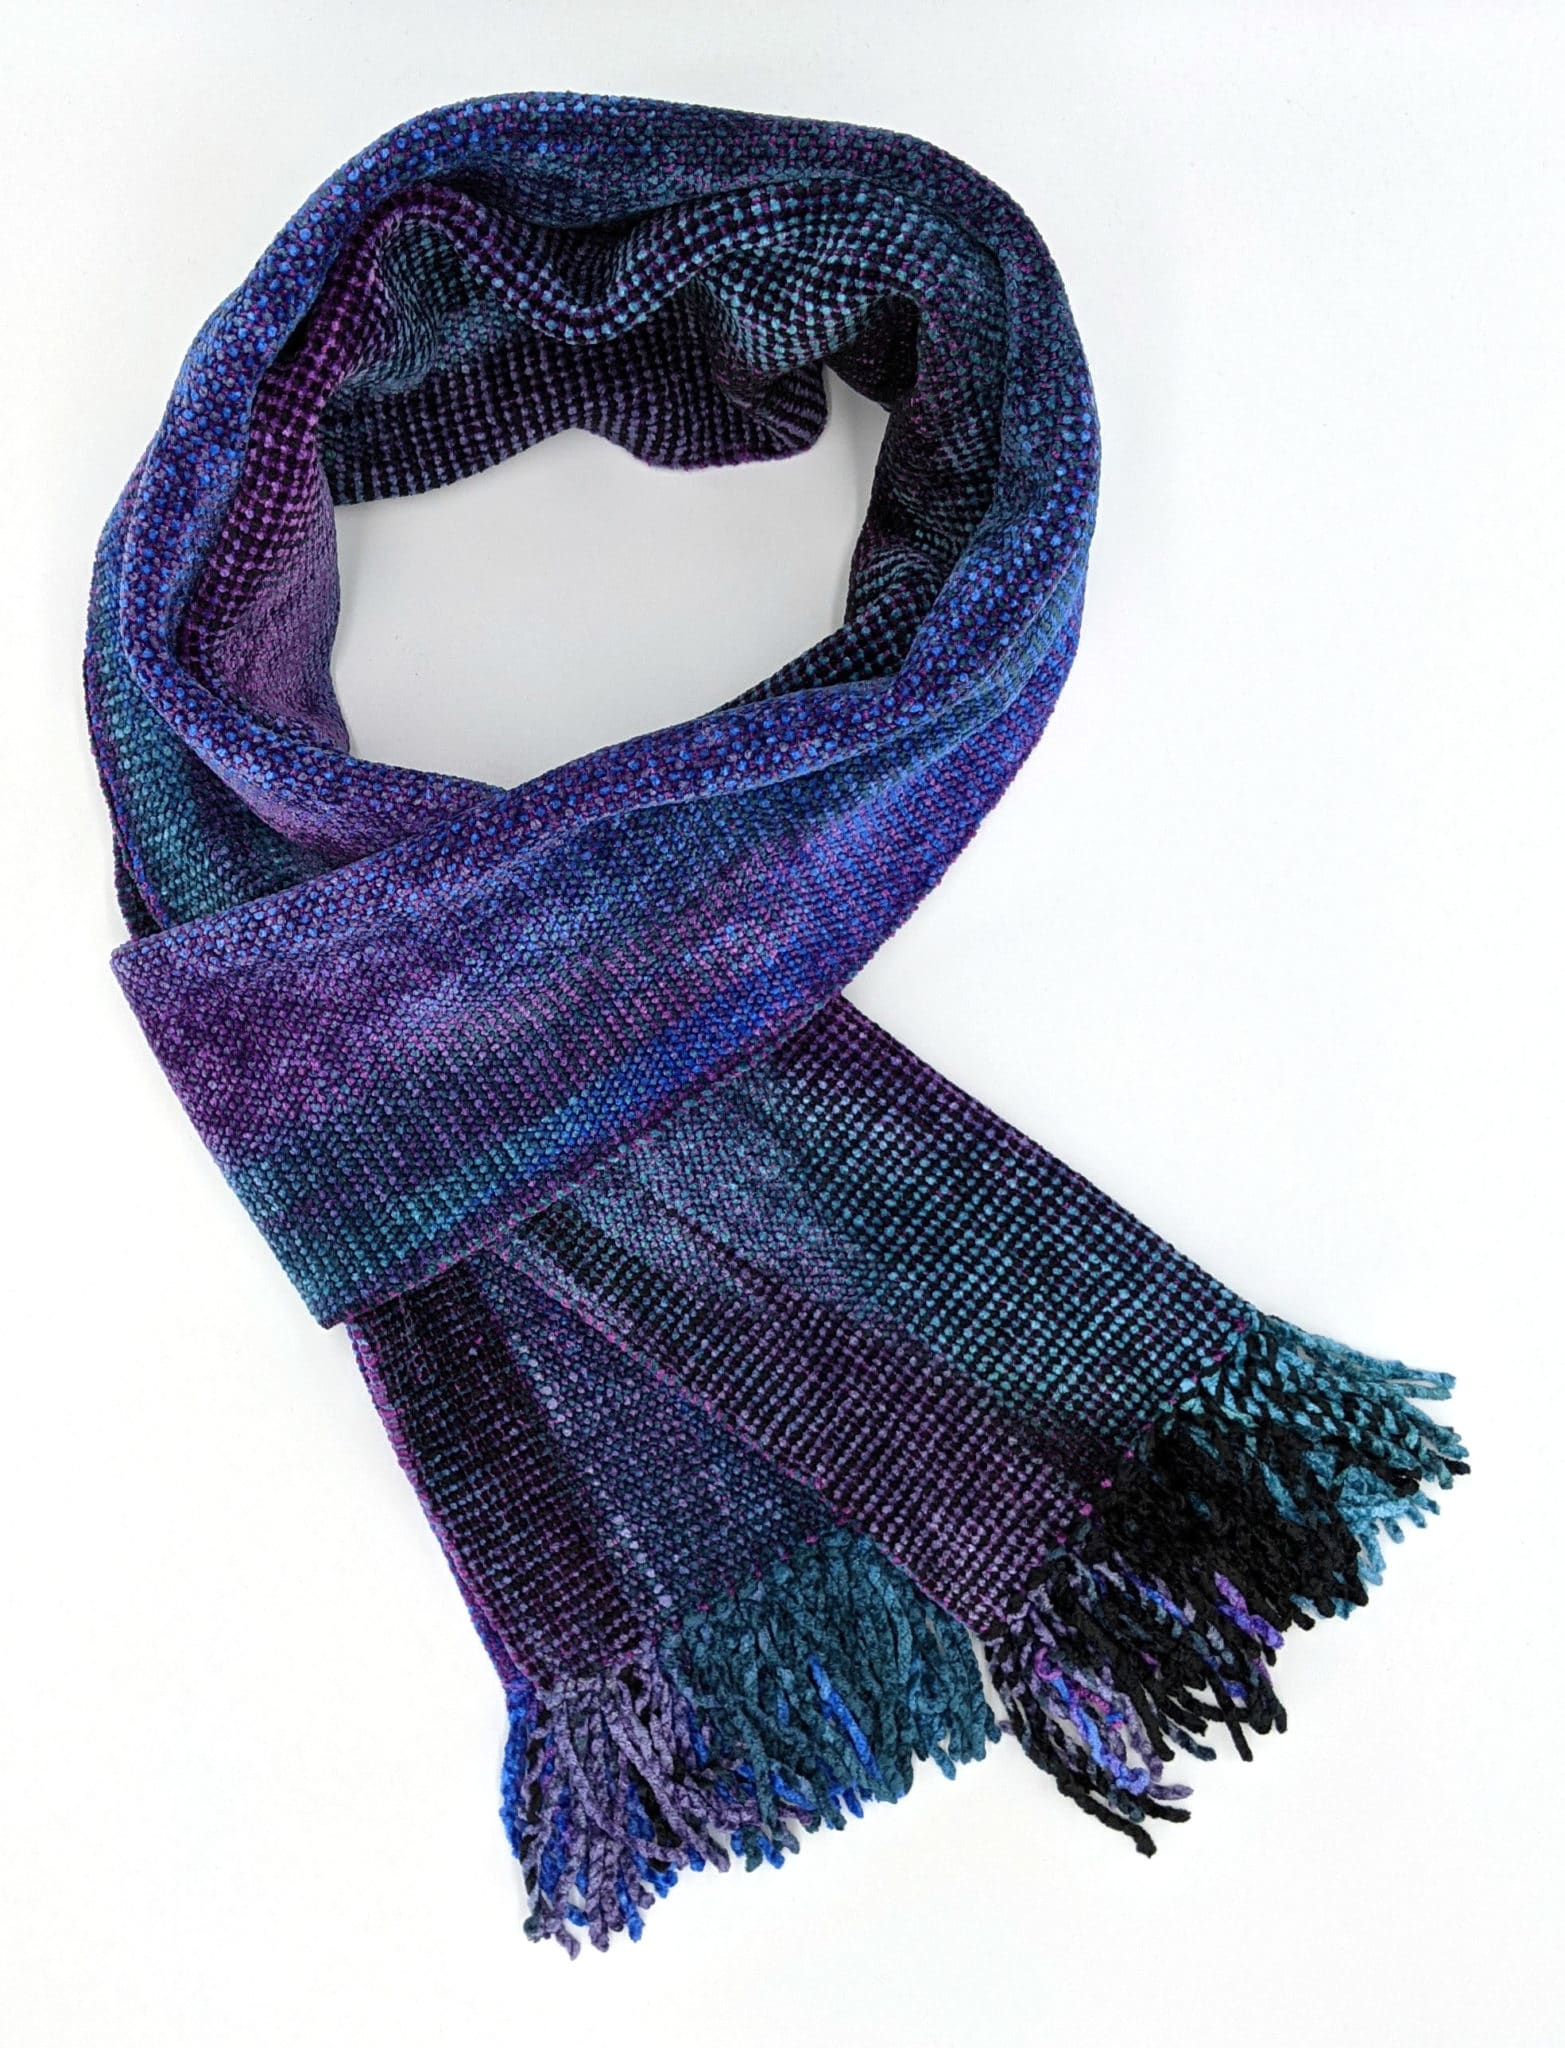 Blue, Teal, Black, and Purple Bamboo Chenille Handwoven Scarf 8 x 68